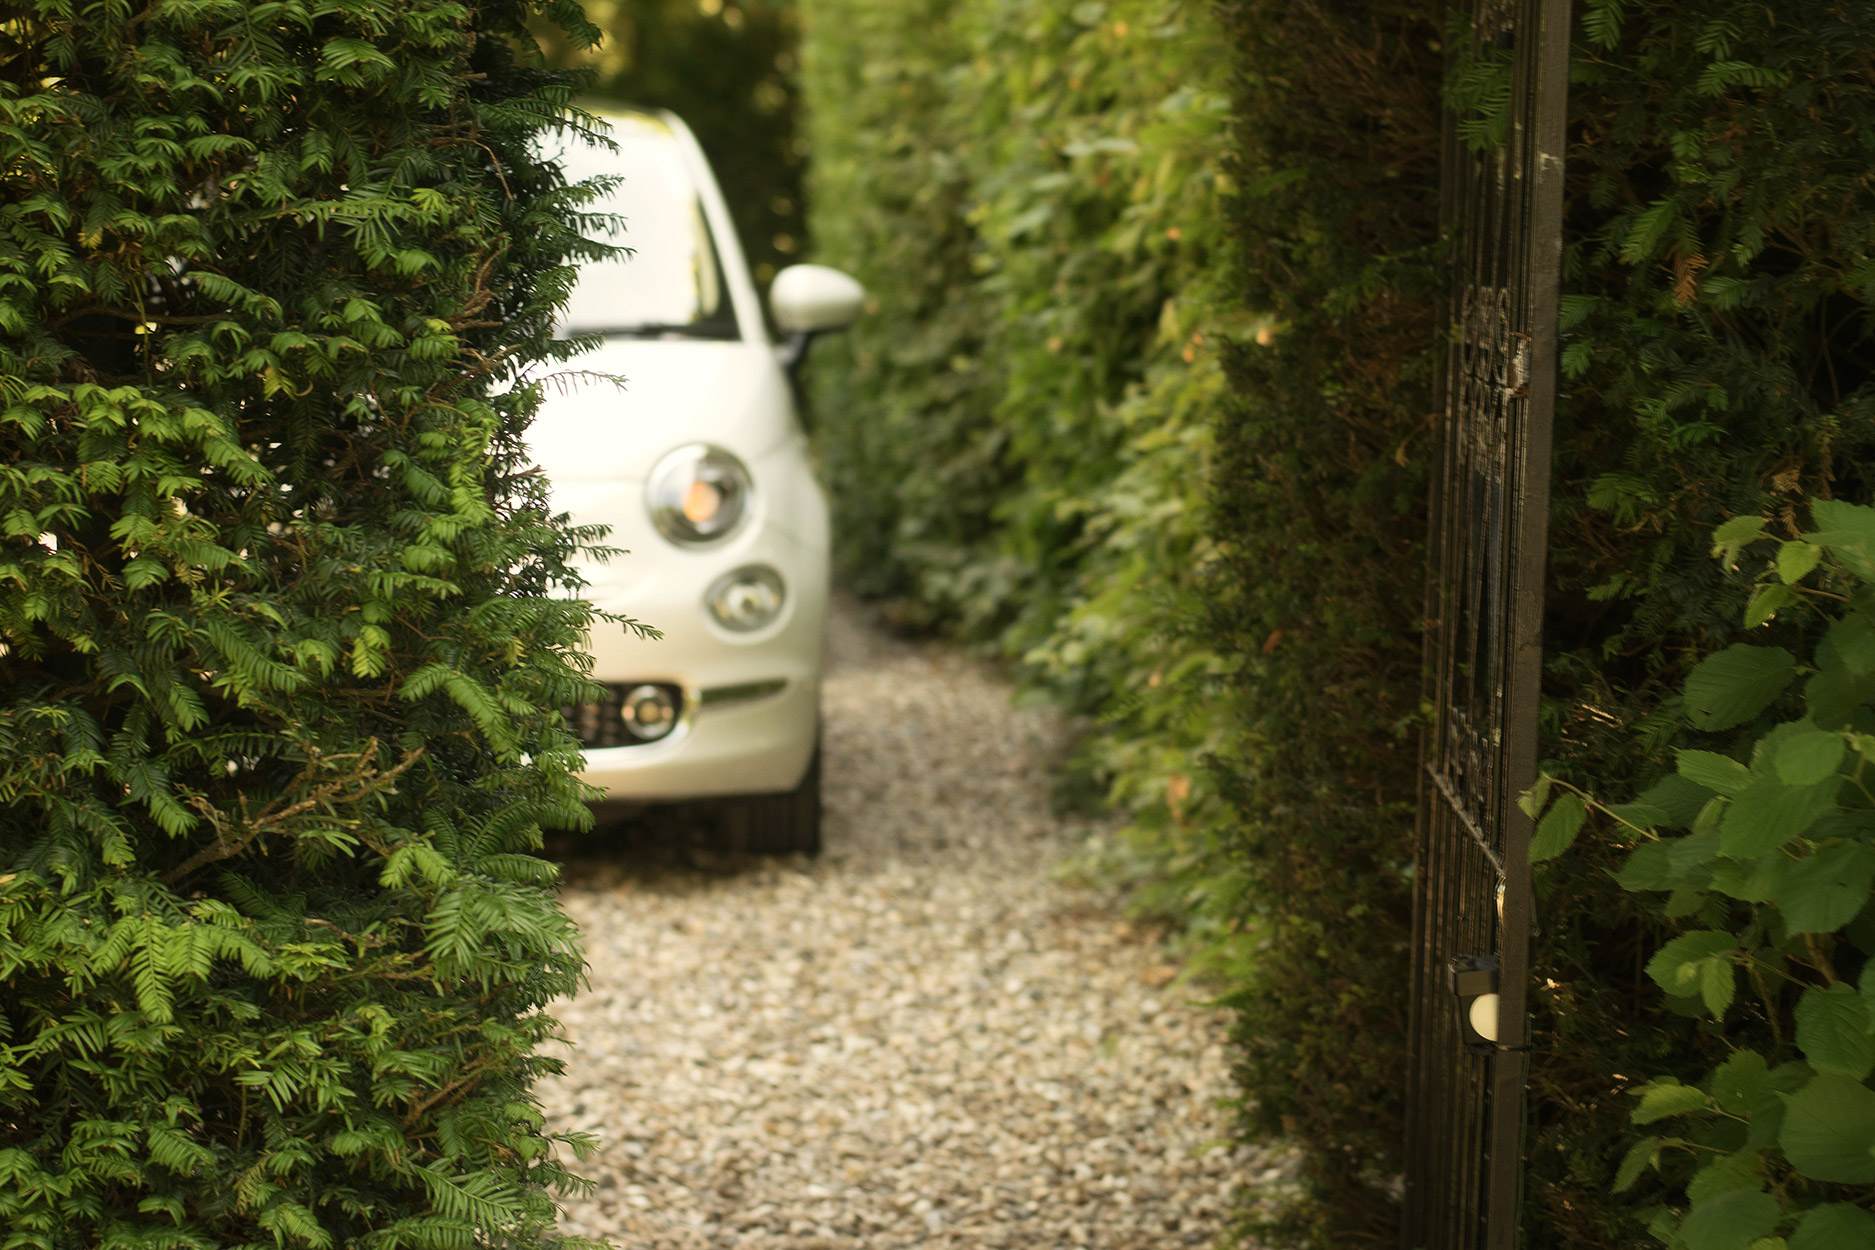 Fiat500 sitting on drive behind bushes